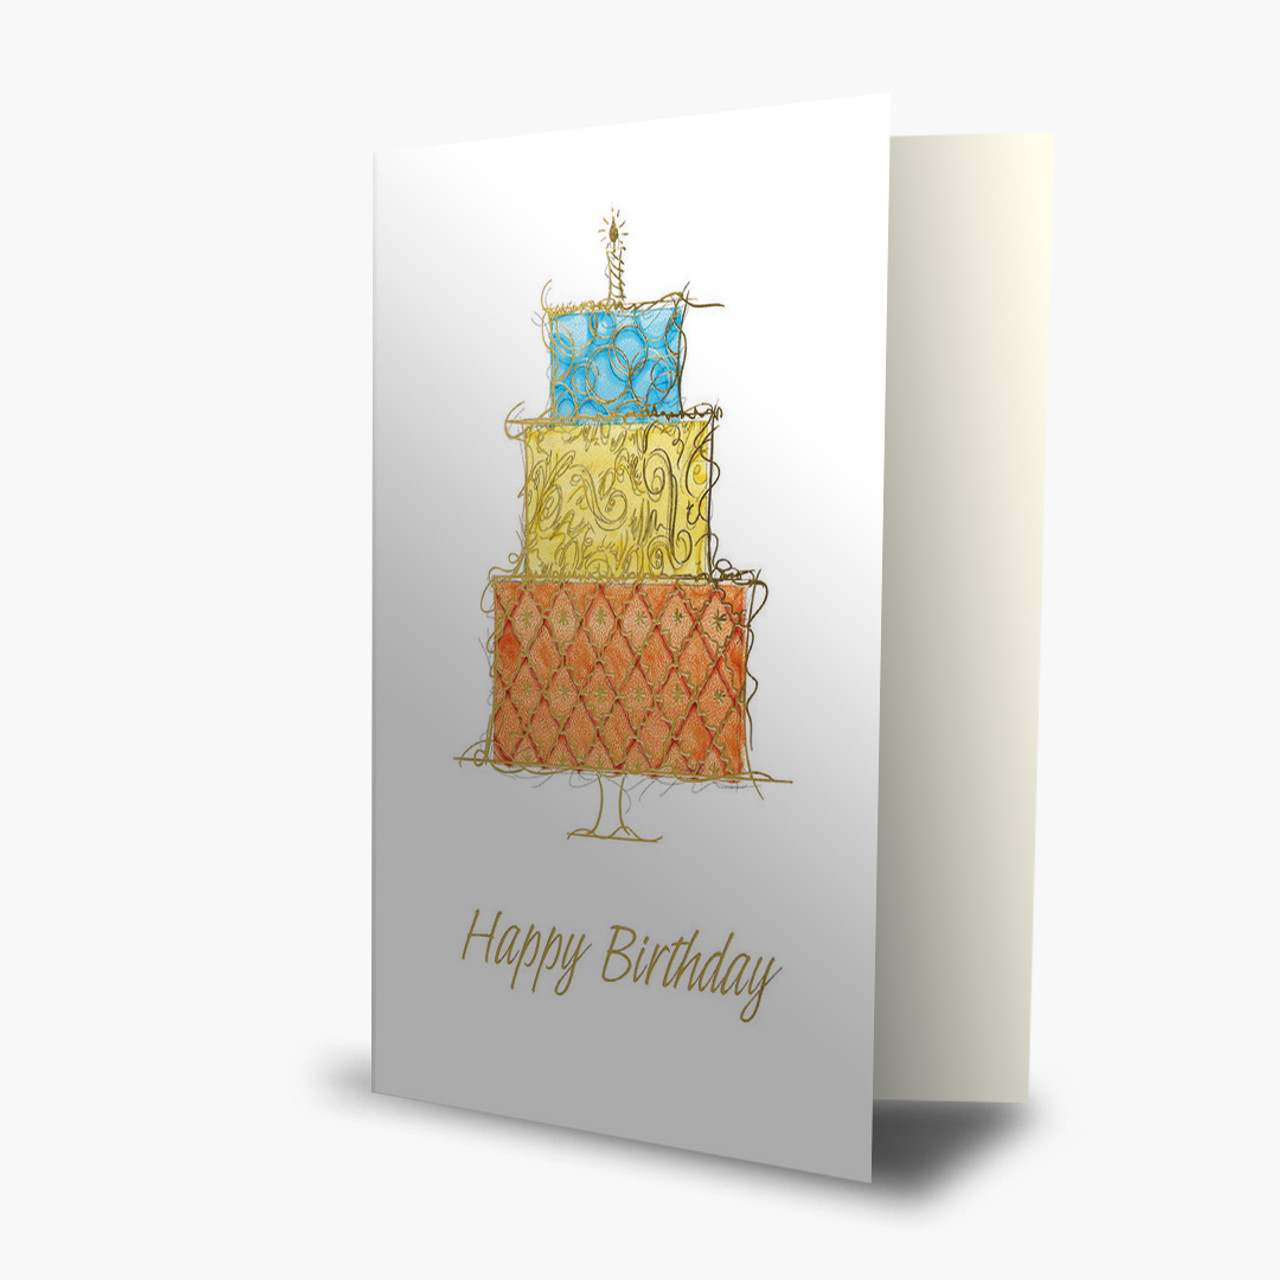 Ornate Cake Birthday Card